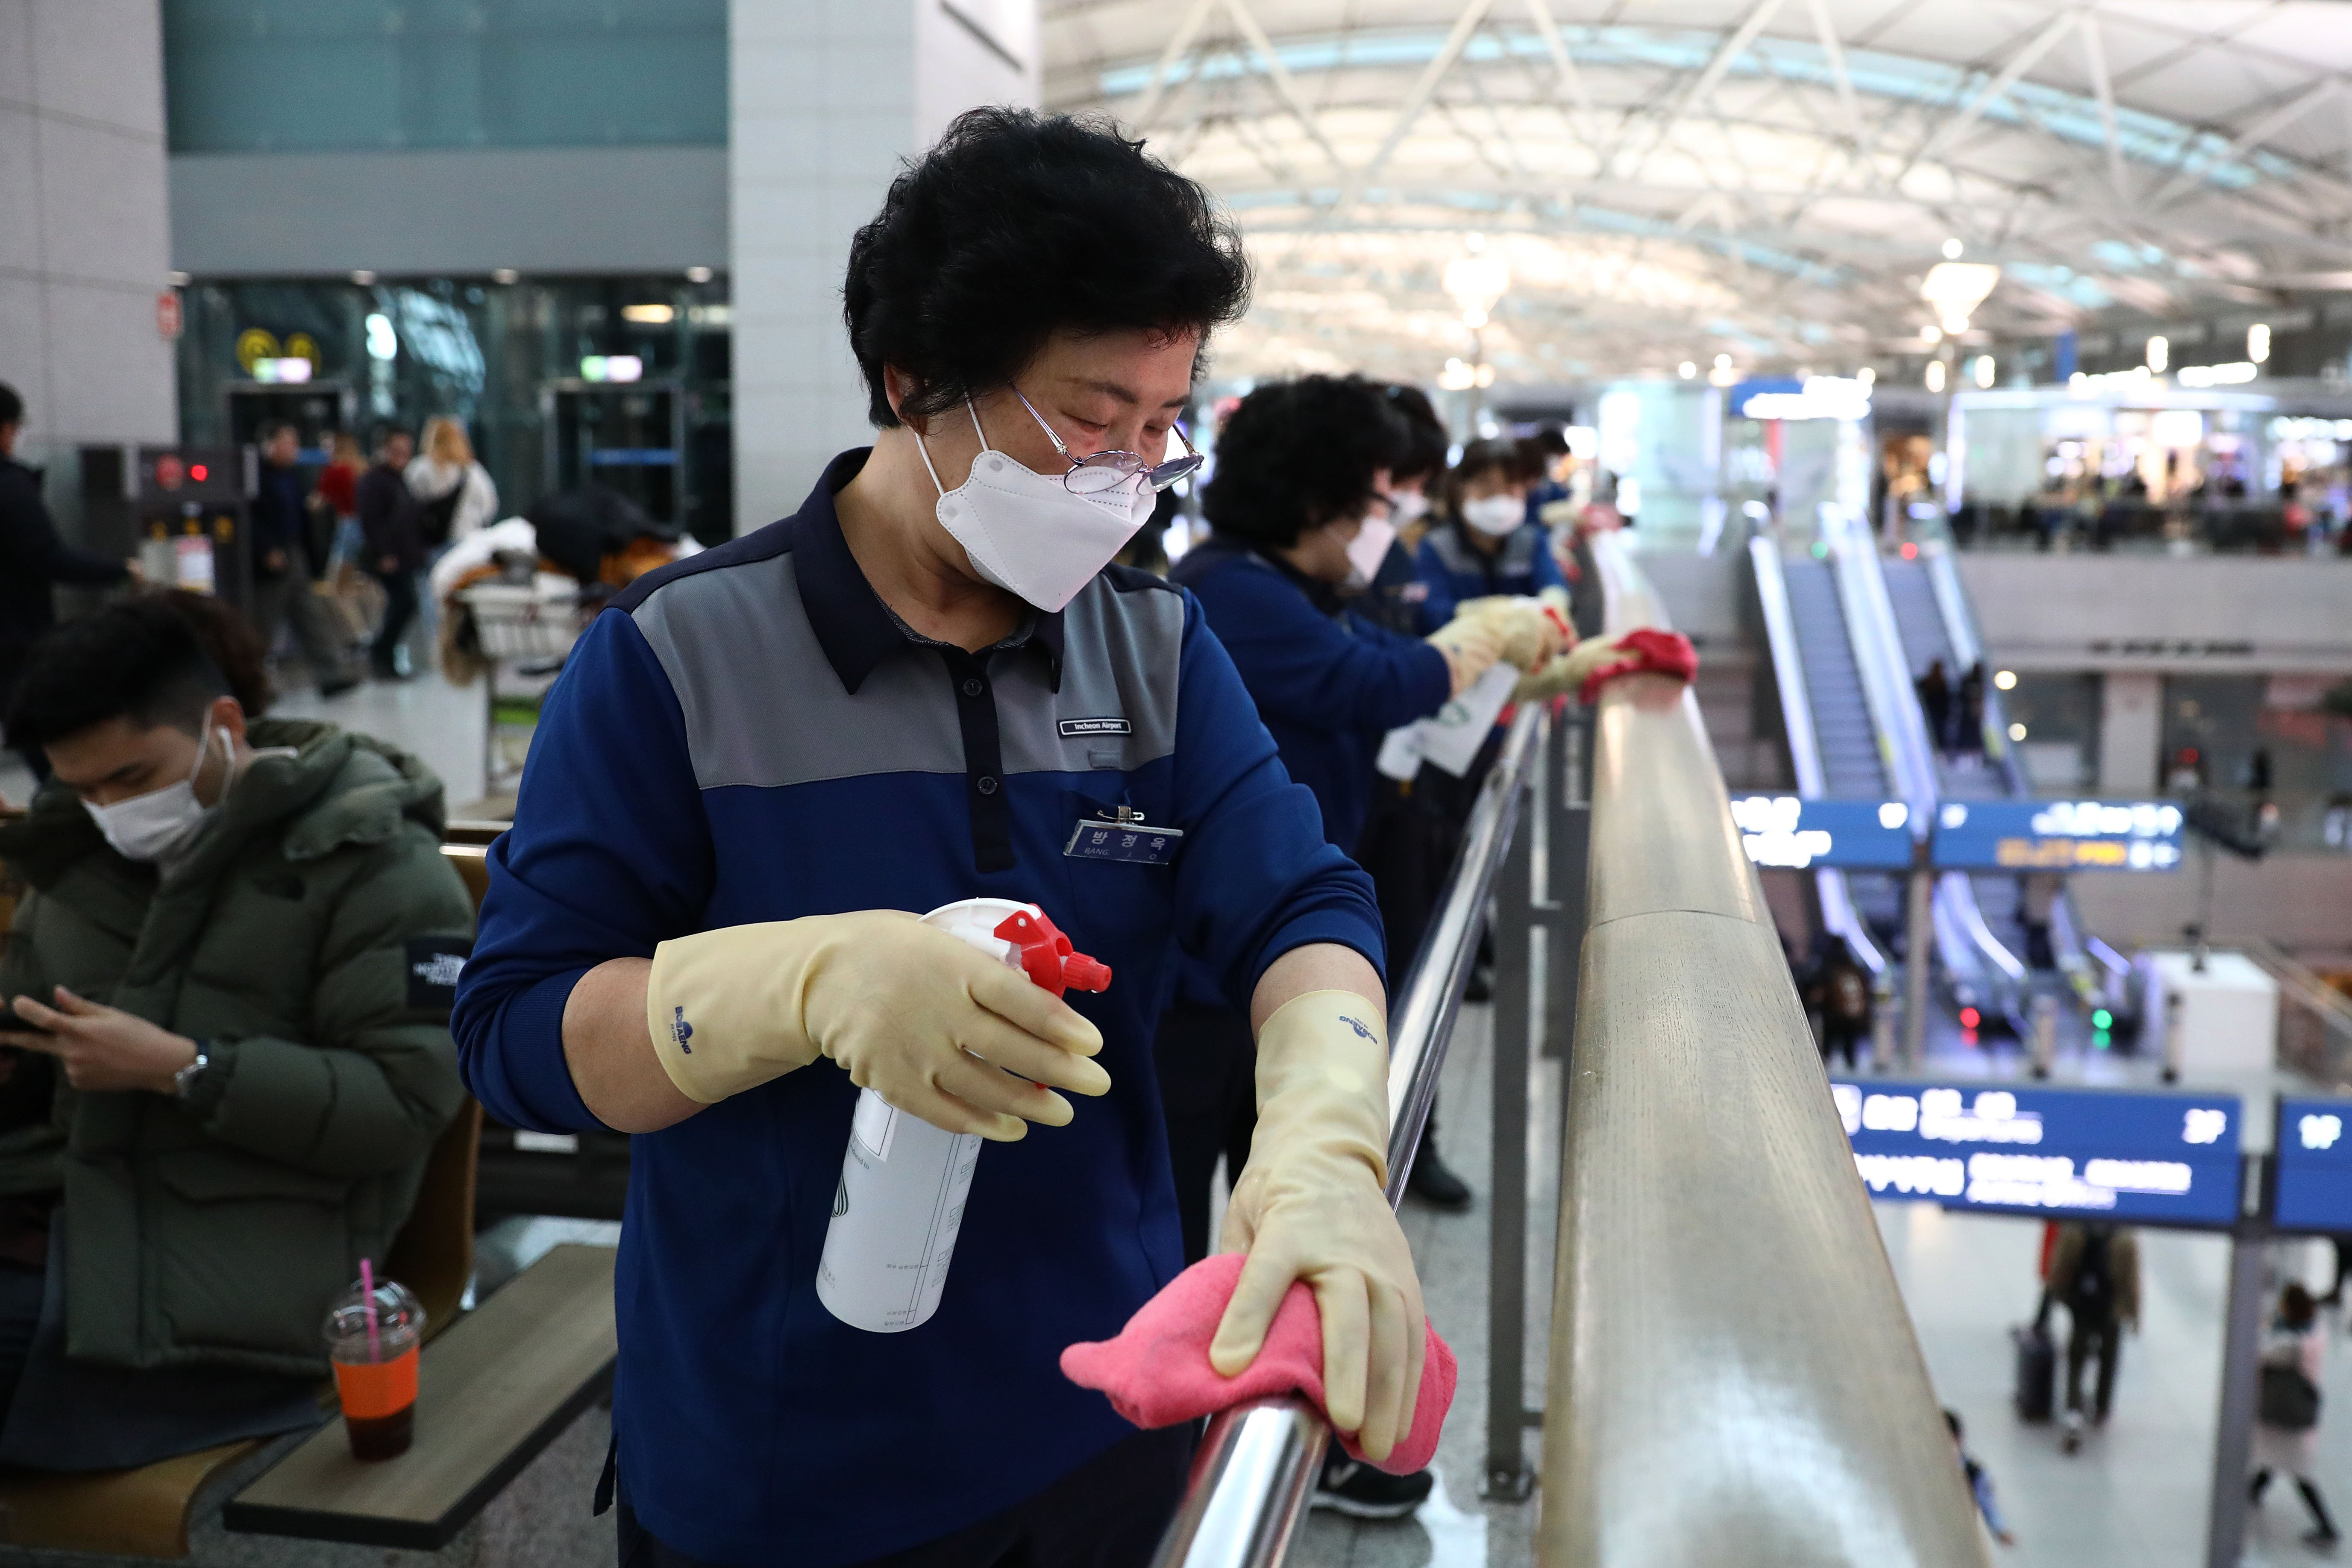 Disinfection workers wearing masks and spray anti-septic solution at the Incheon International Airport on January 27, 2020 in Incheon, South Korea. South Korea confirmed its fourth case of the deadly coronavirus which emerged last month in the city of Wuhan in China and South Korea is one of the most popular foreign travel destinations for Chinese tourists. (Photo by Chung Sung-Jun/Getty Images)